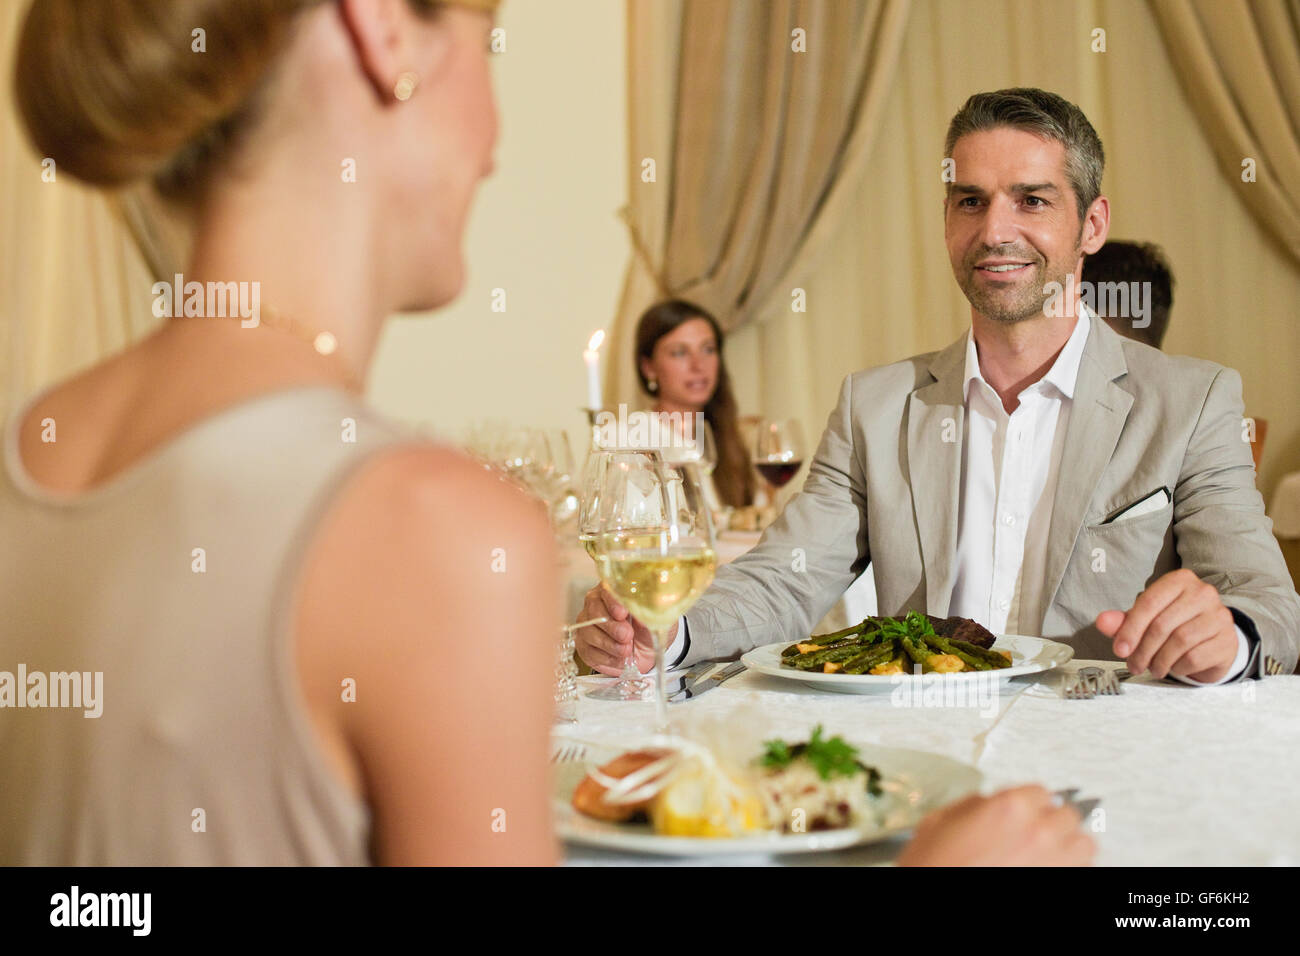 Man and woman sitting in restaurant with people in background. - Stock Image